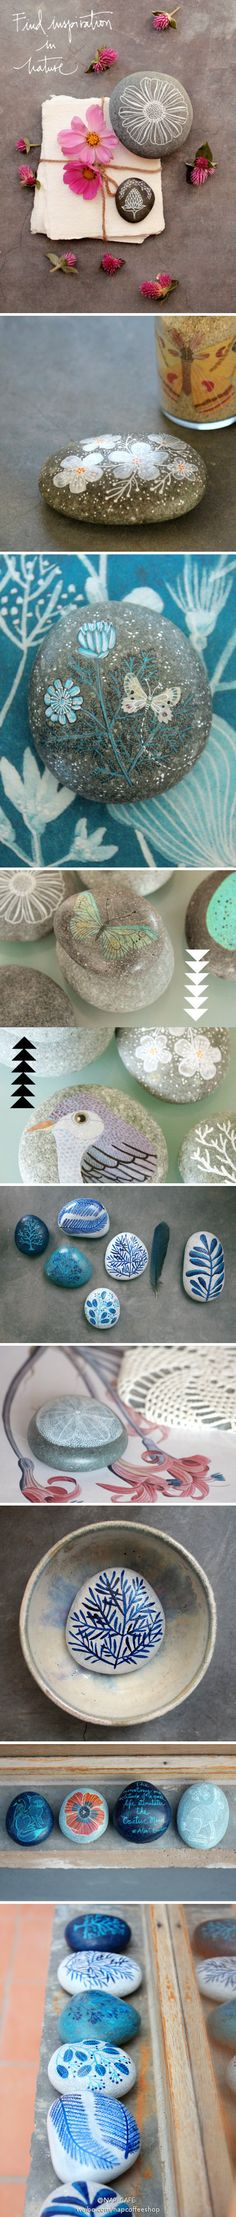 The best DIY projects & DIY ideas and tutorials: sewing, paper craft, DIY. DIY Gifts Ideas 2017 / 2018 hand painting stones These are so pretty. I have absolutely no excuse for not making these. -Read More - Stone Crafts, Rock Crafts, Fun Crafts, Diy And Crafts, Crafts For Kids, Arts And Crafts, Pebble Painting, Pebble Art, Stone Painting